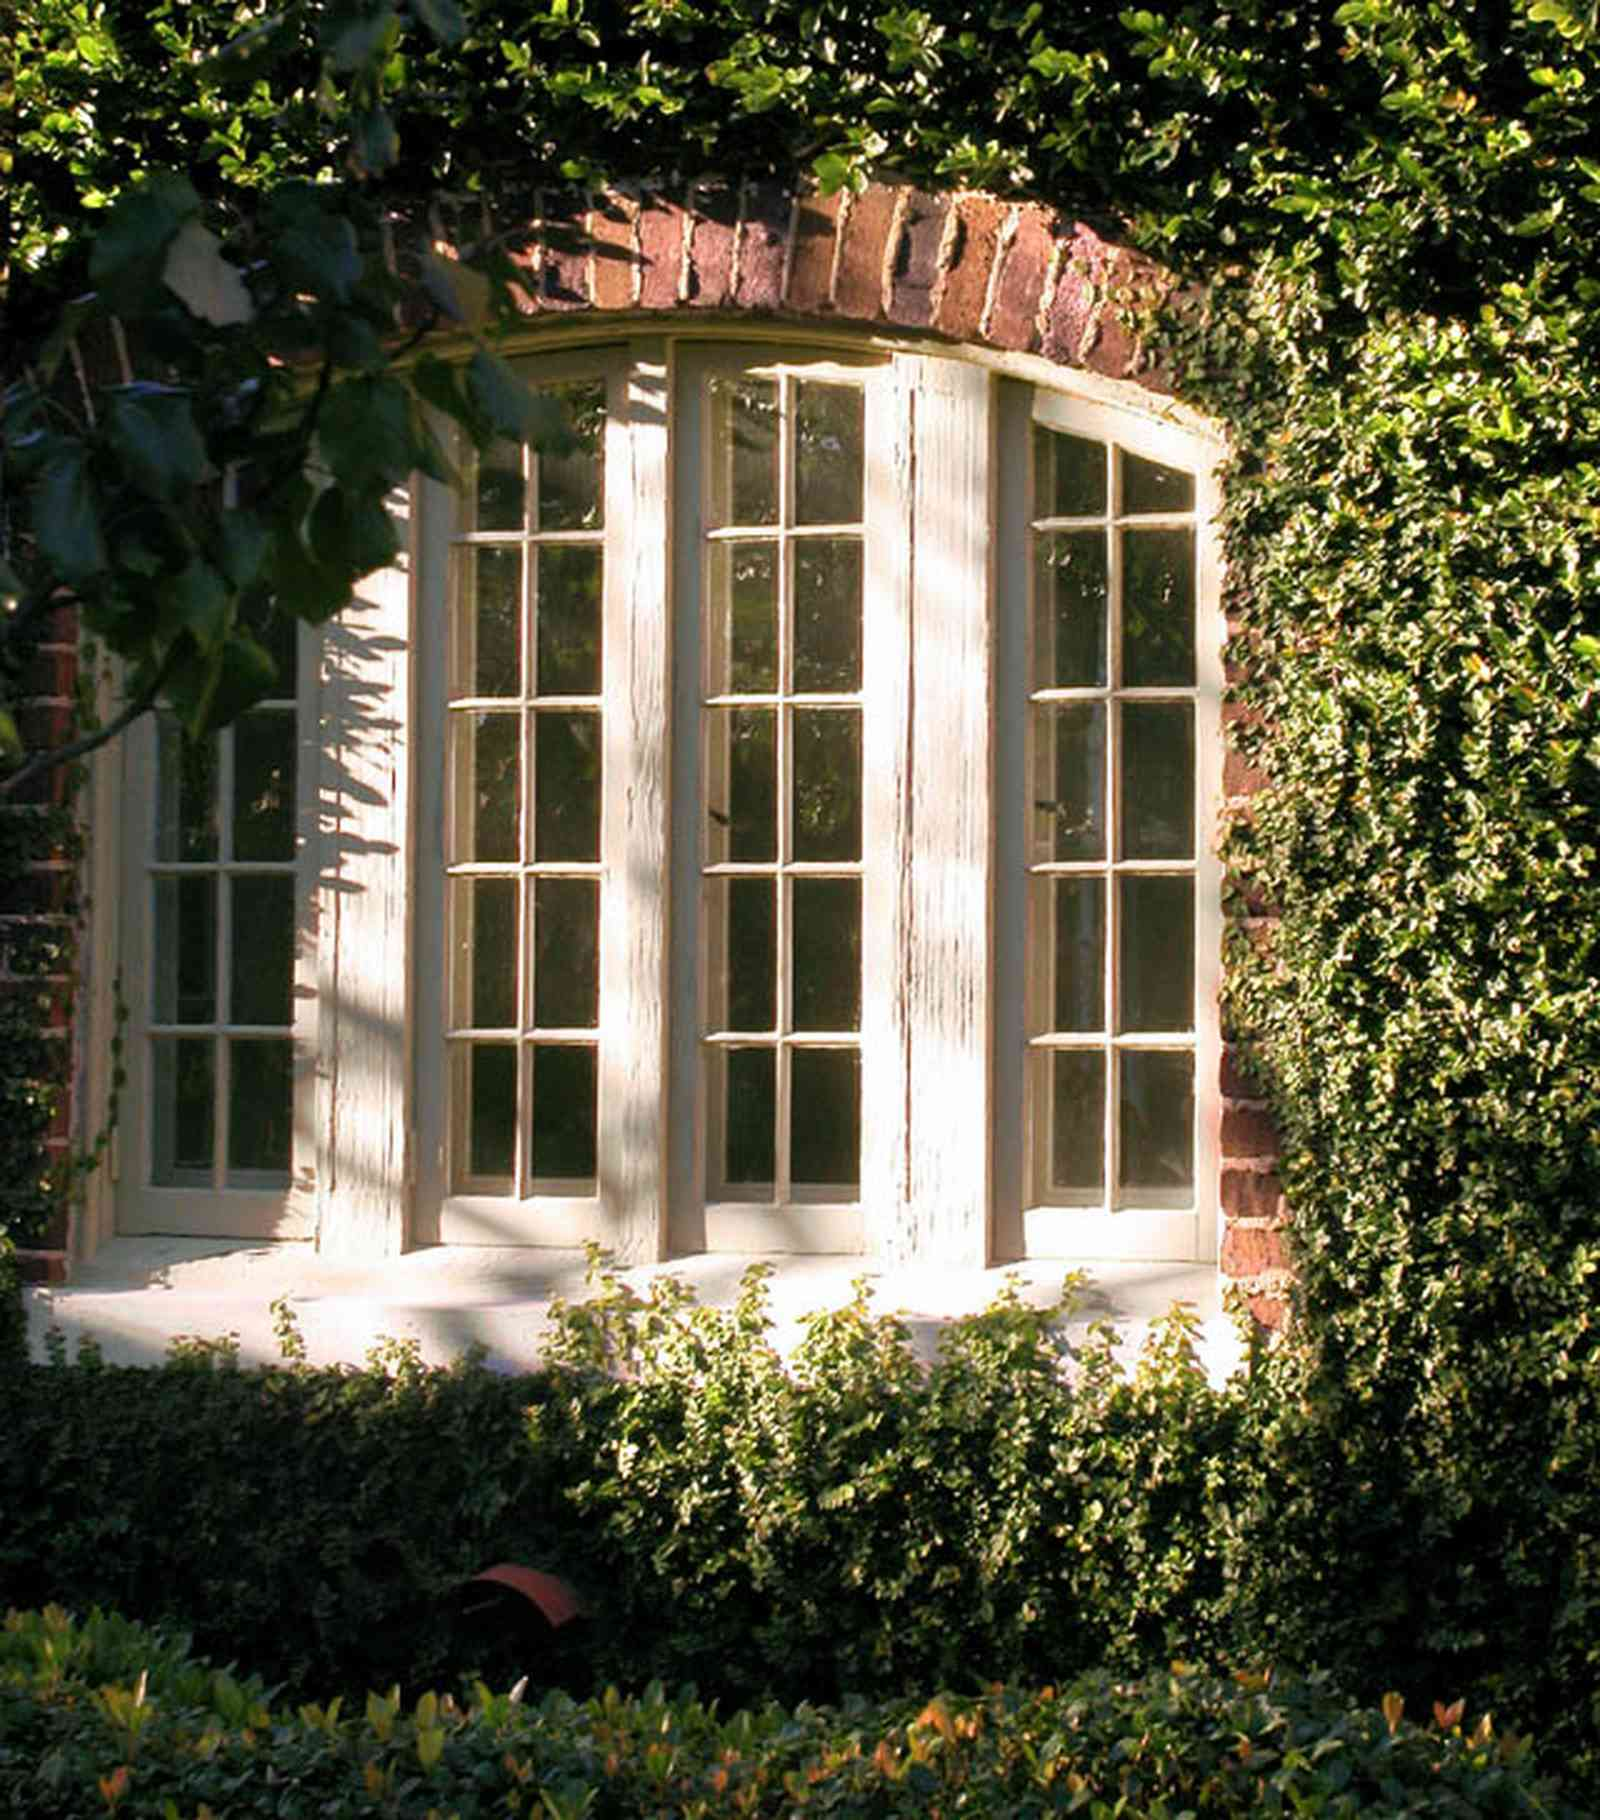 North-Hill:-406-Lloyd-Street_02.jpg:  casement window, ivy-covered walls, windowpane, castle, gothic revival, tudor architectural style